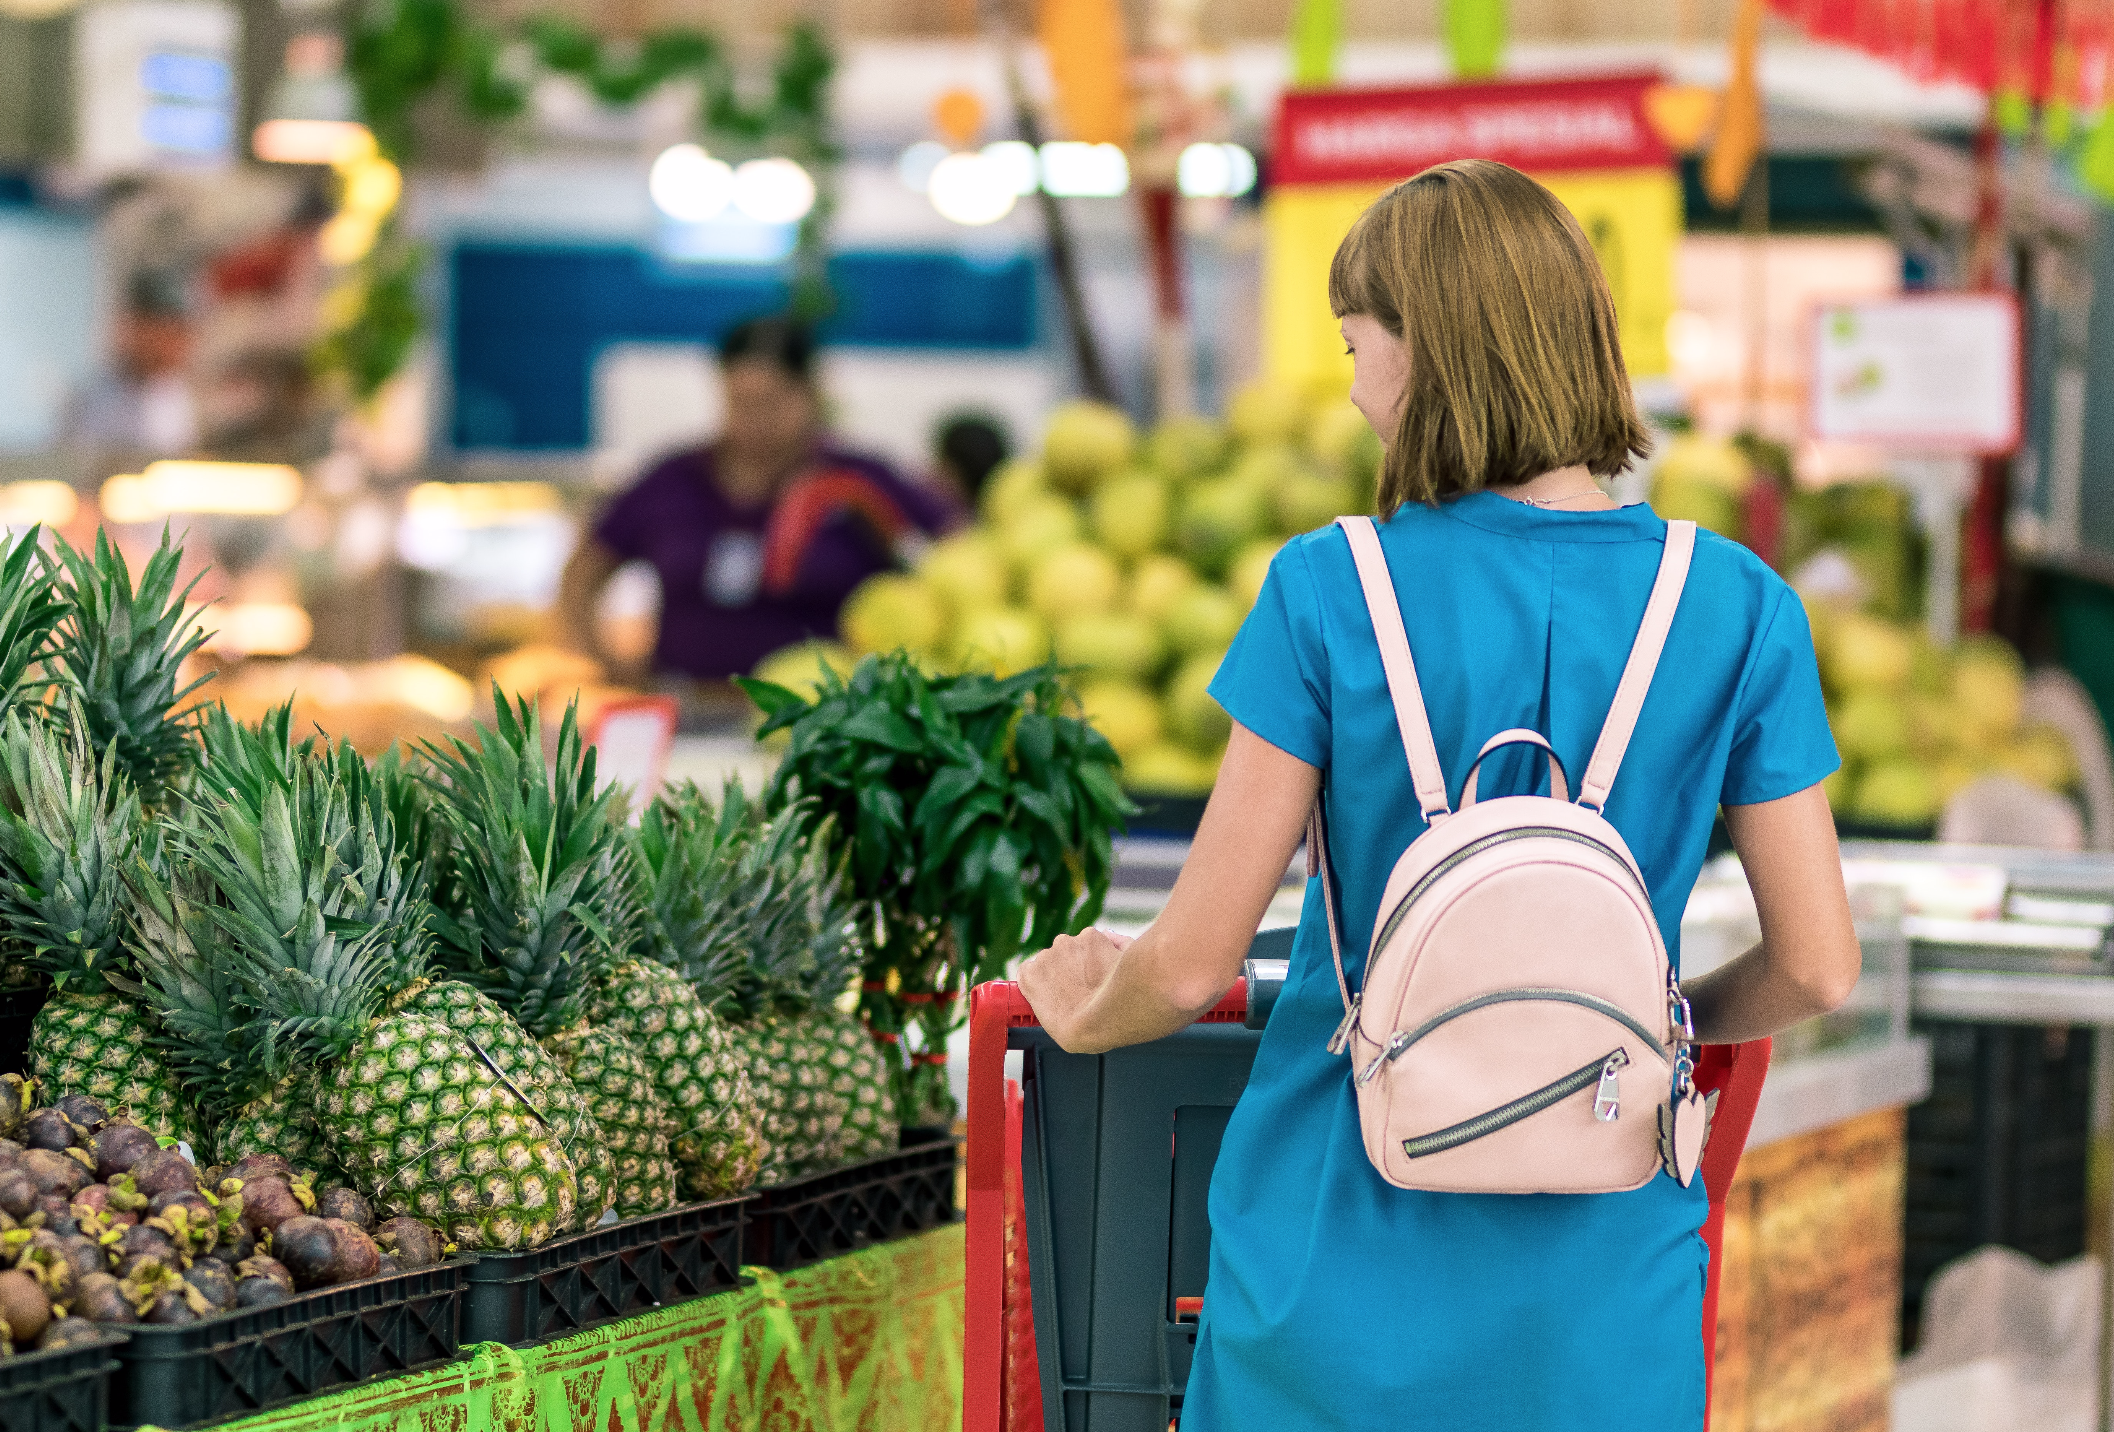 A woman at a grocery store. | Source: Pexels